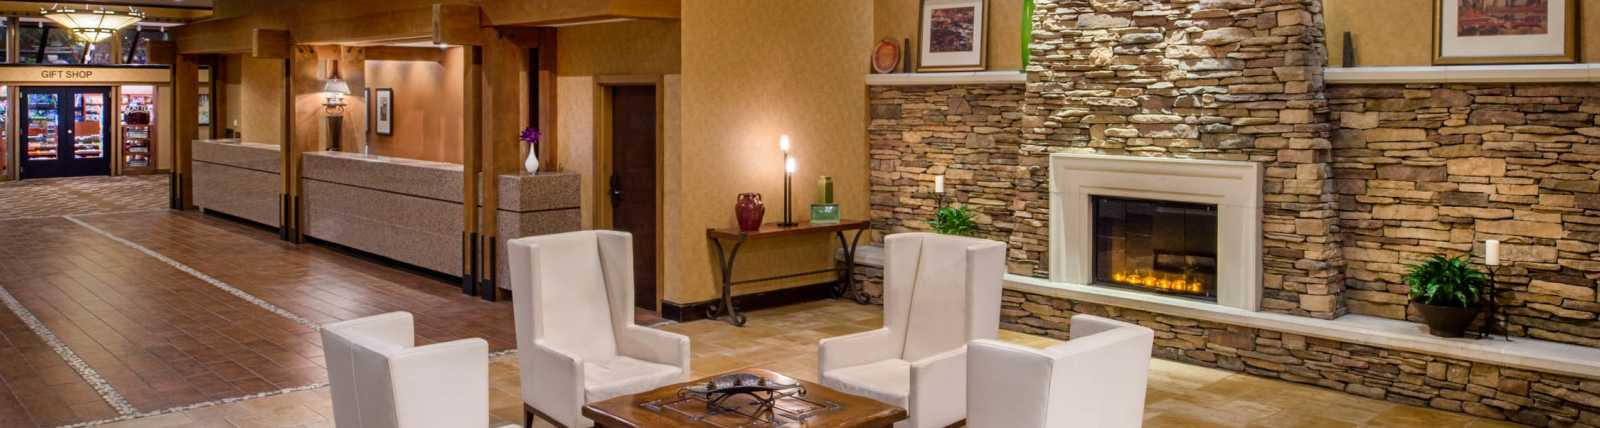 meeting-facility-DoubleTree_by_Hilton_Seattle_Airport_Meeting_Facility-2.jpg